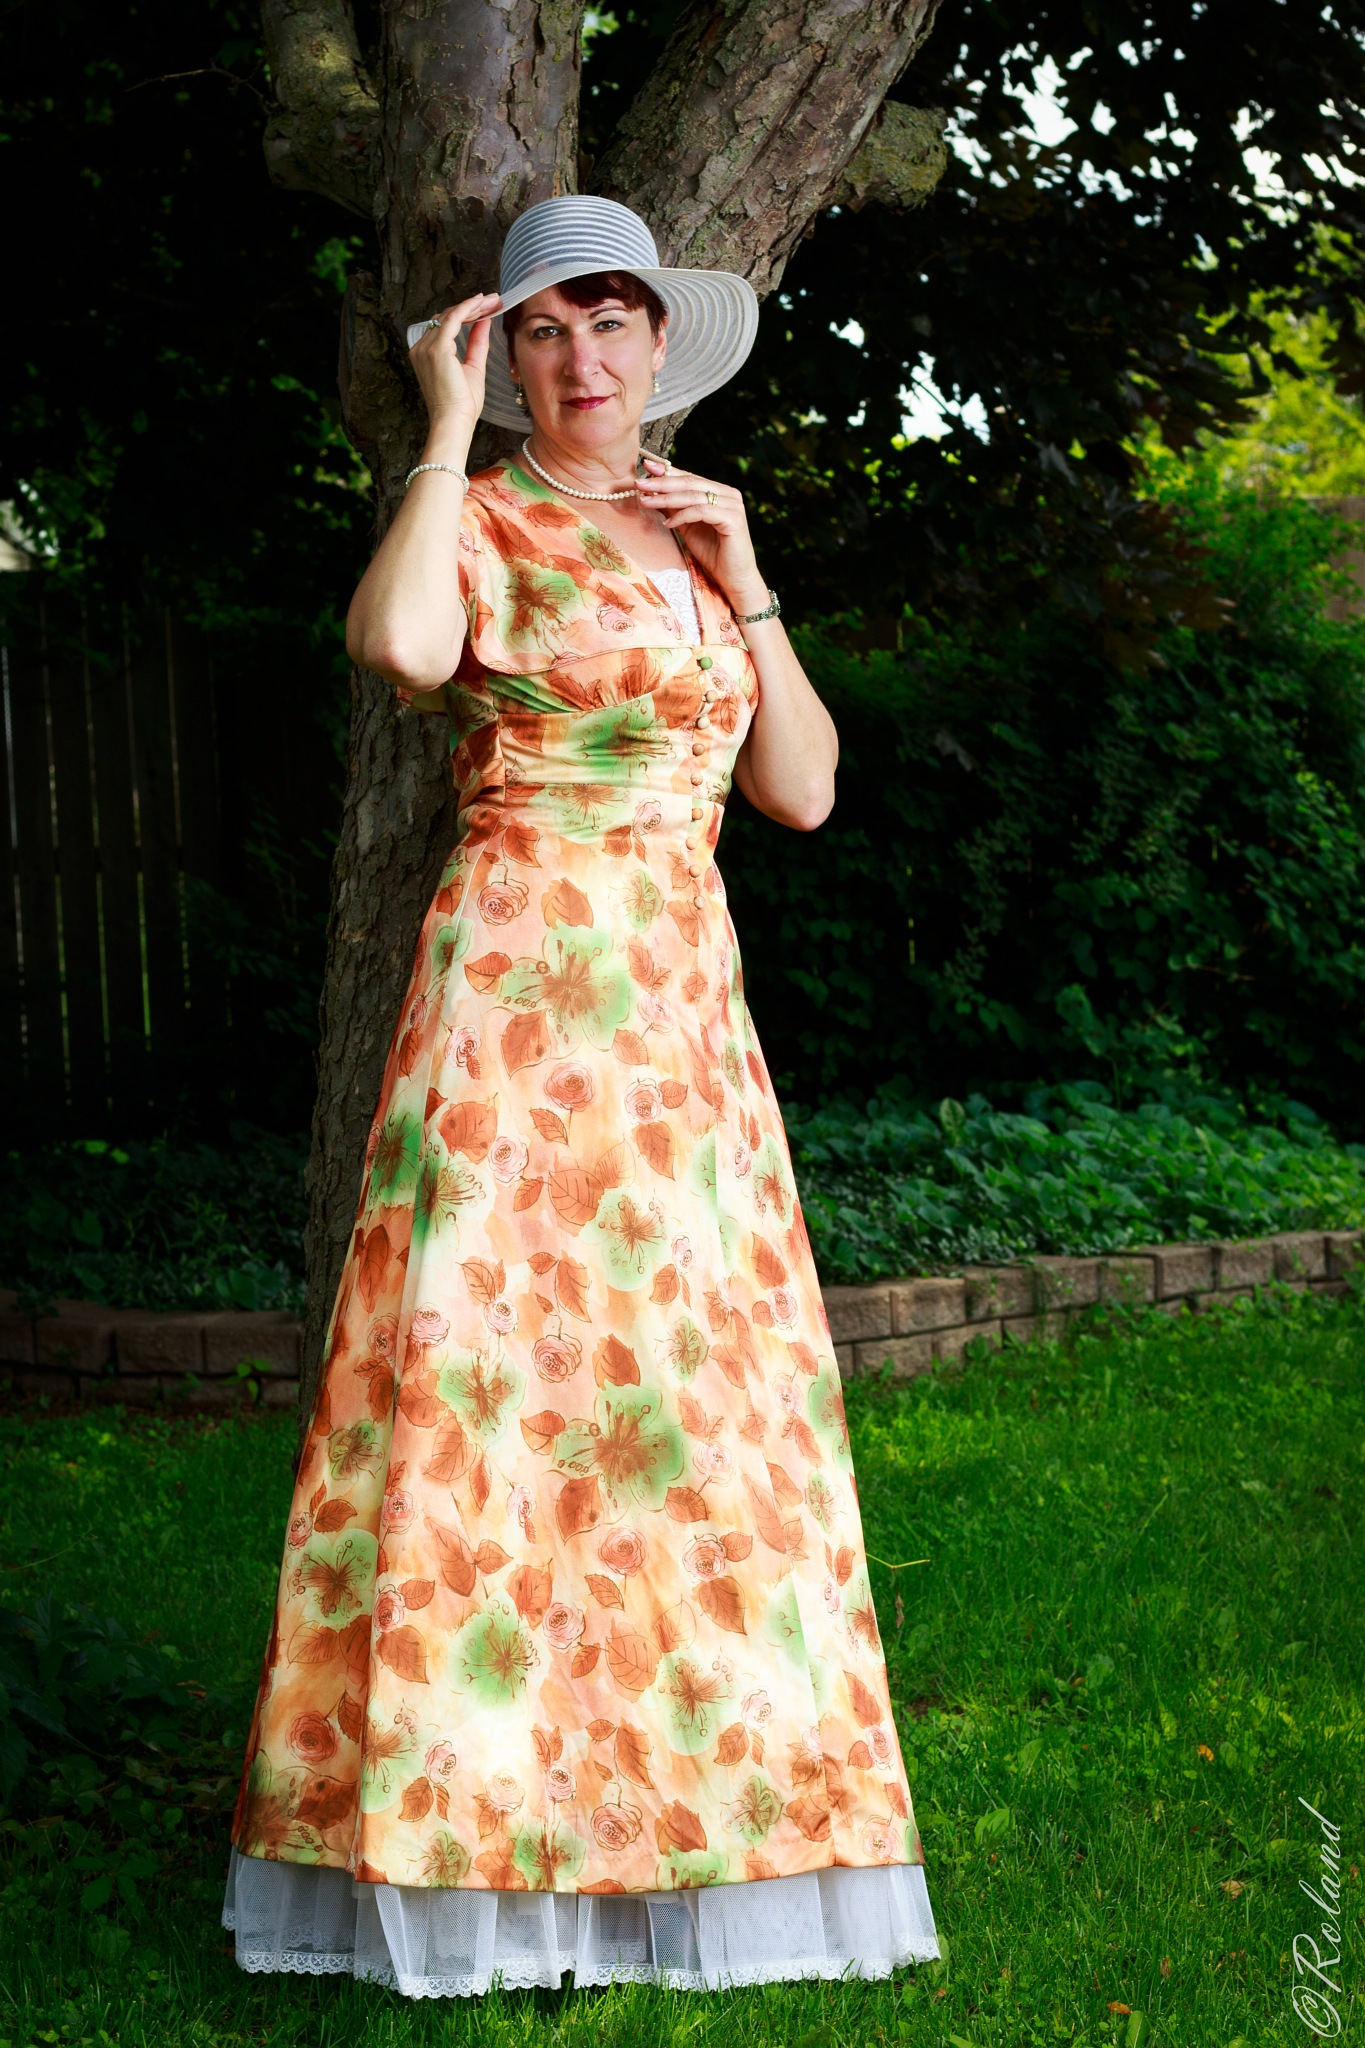 Sue in vintage dress-03 by PiettePhotography